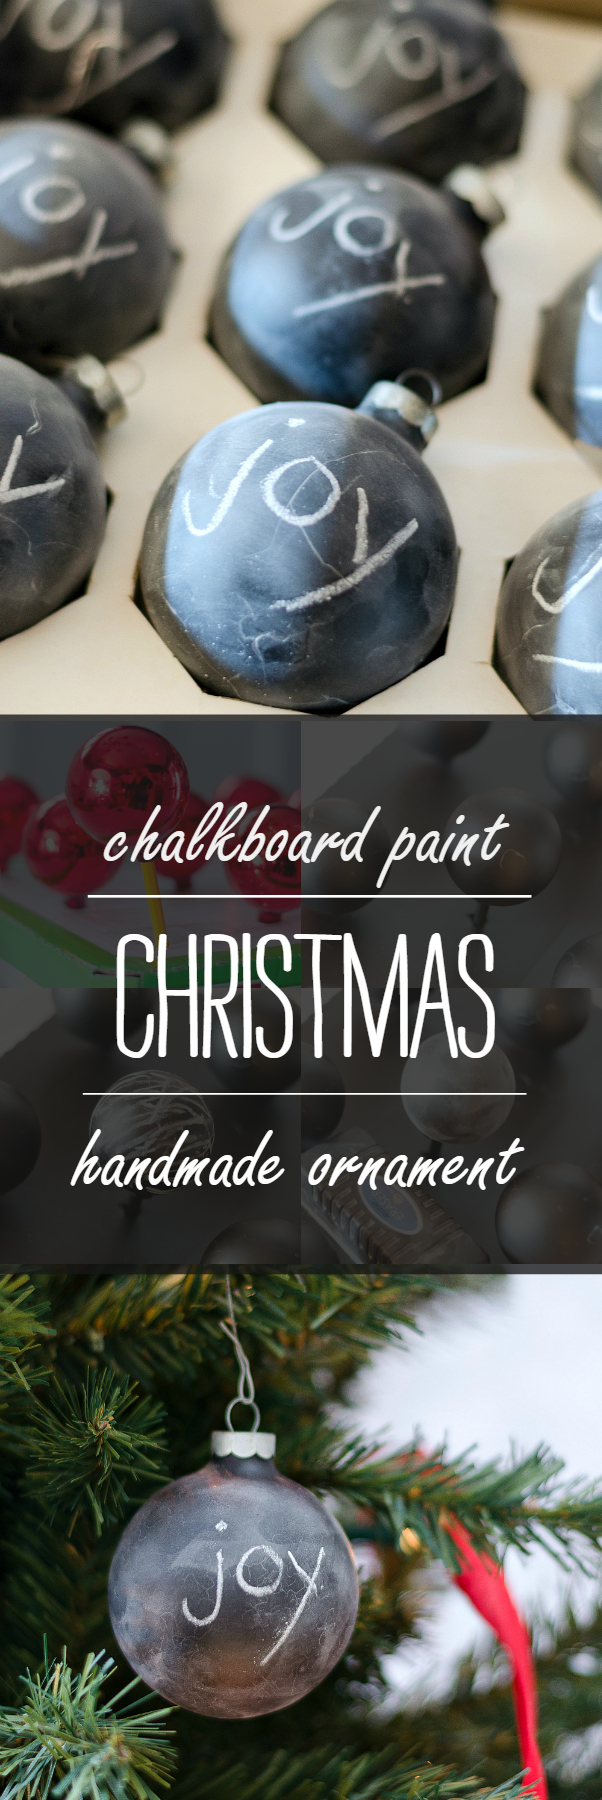 Handmade Ornament Ideas with Chalkboard Paint